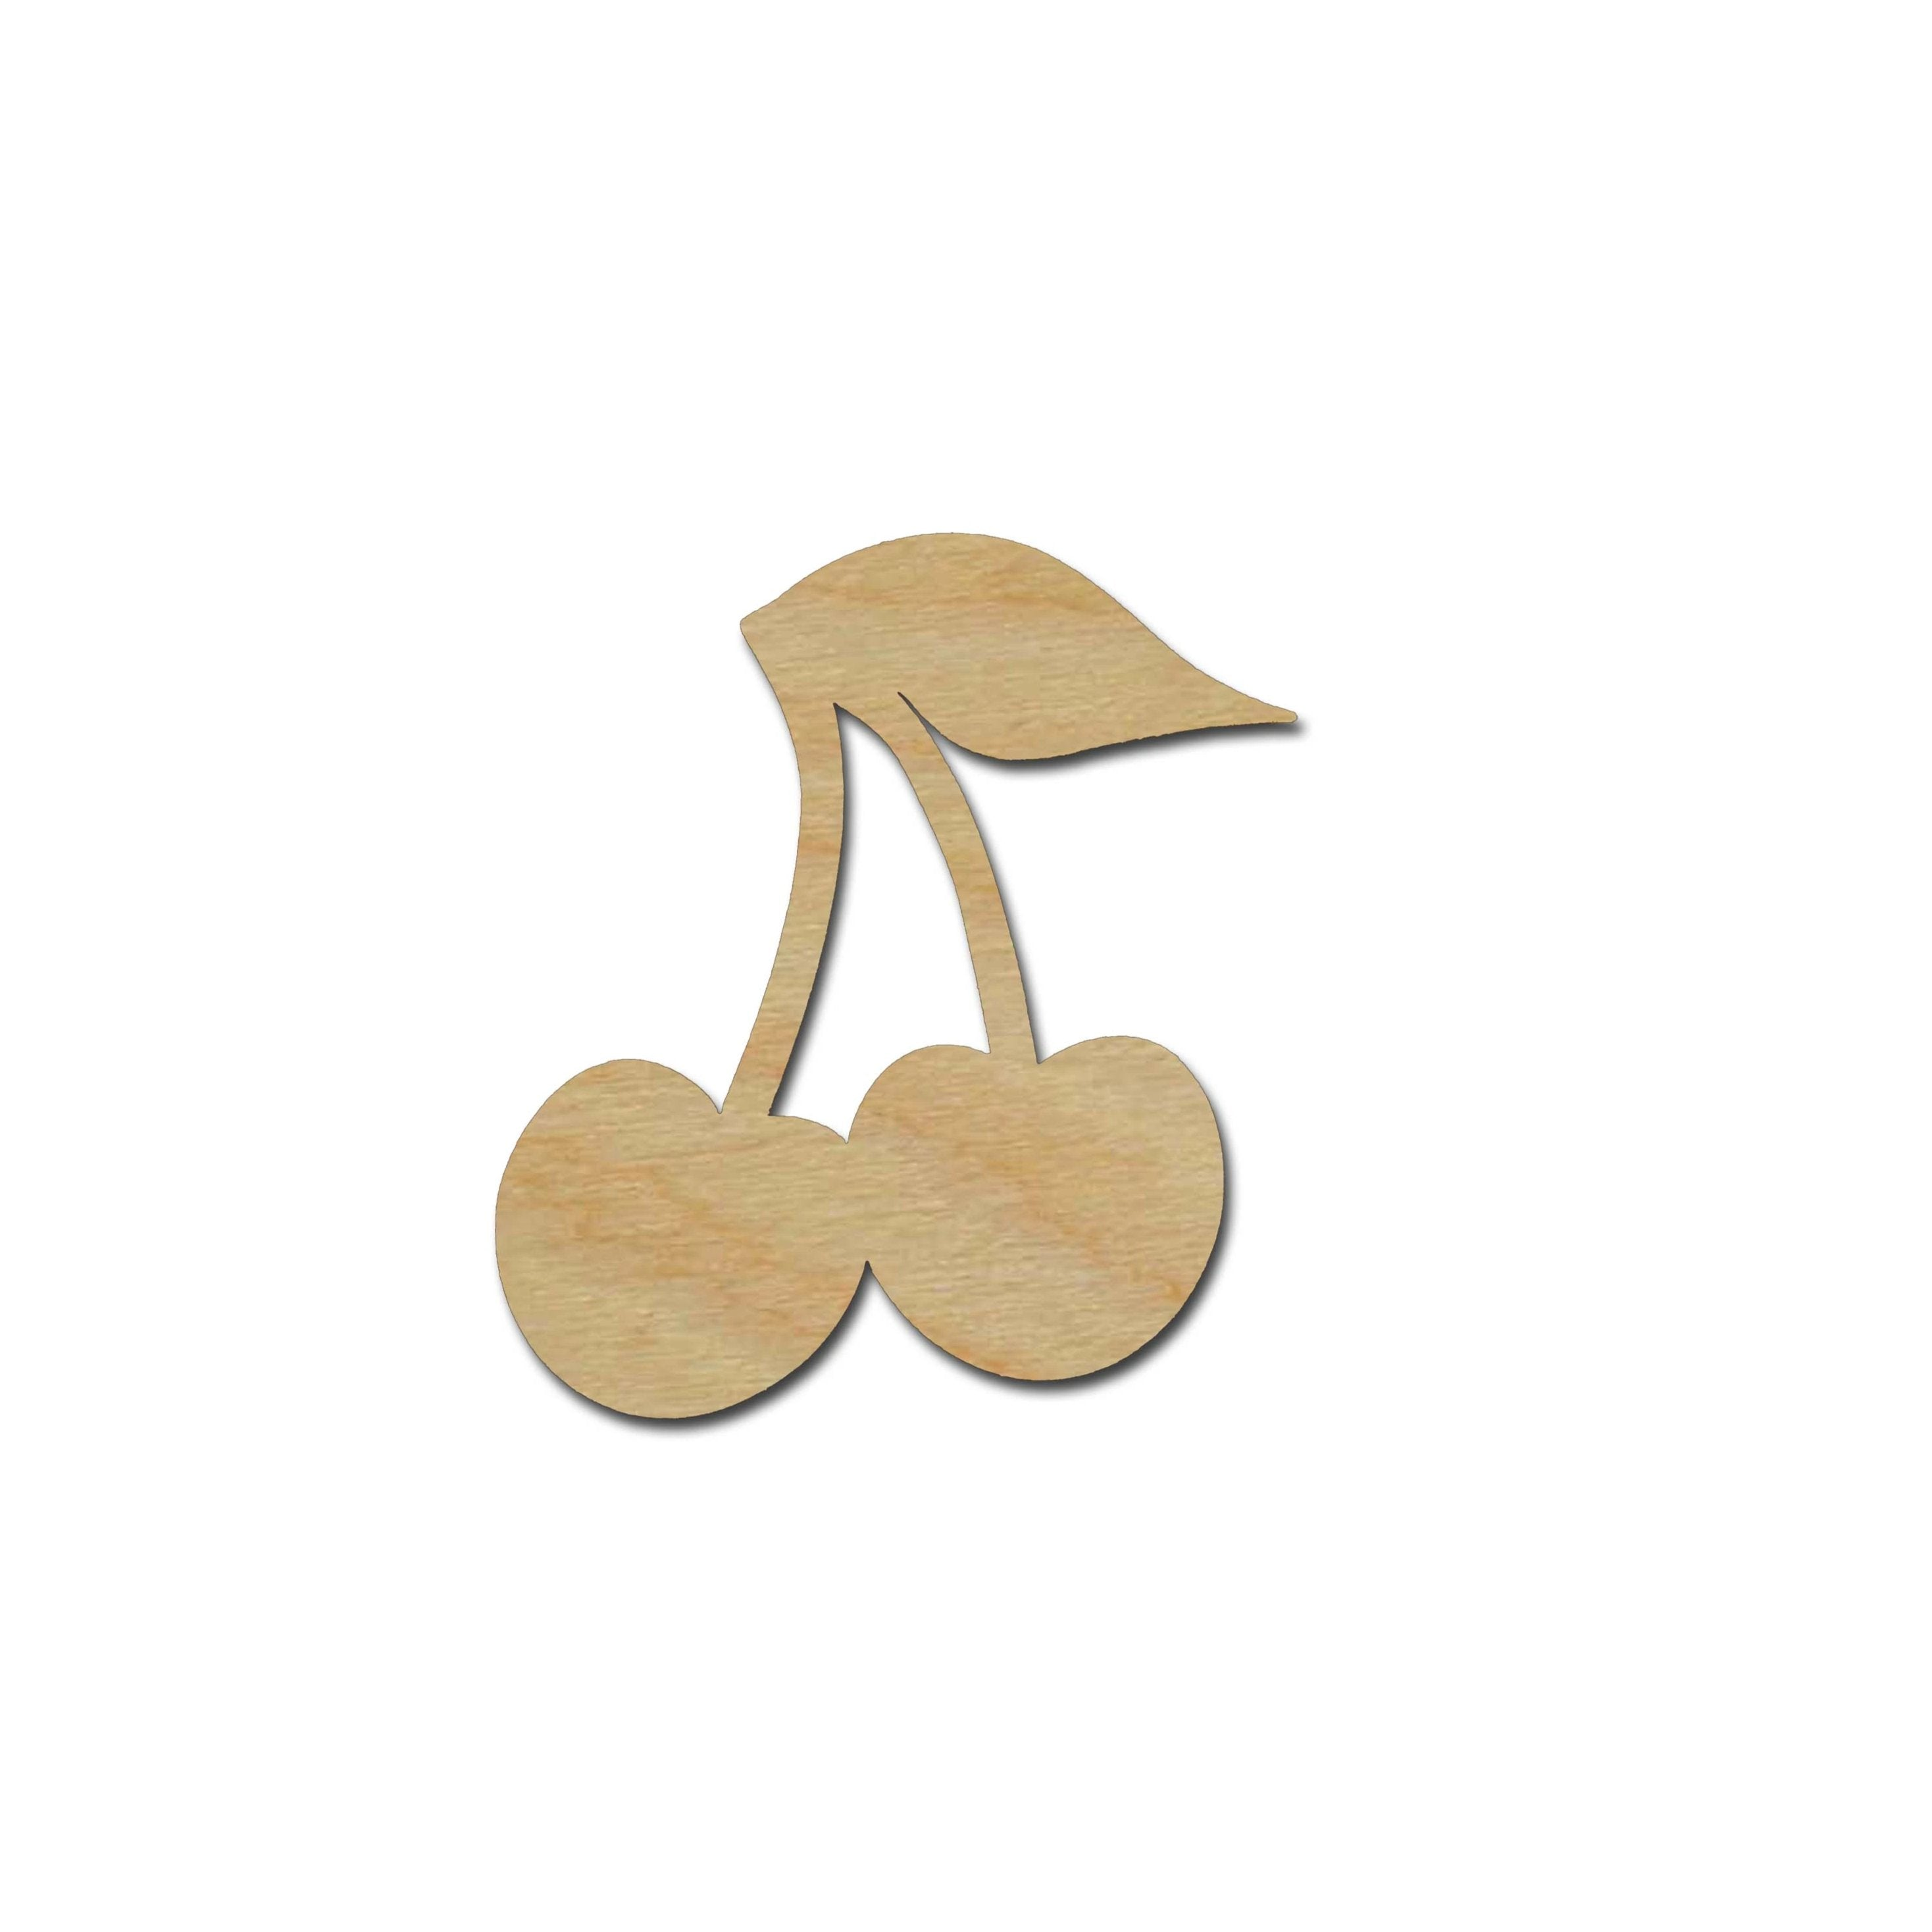 Cherry Shape Unfinished Wood Cut Outs